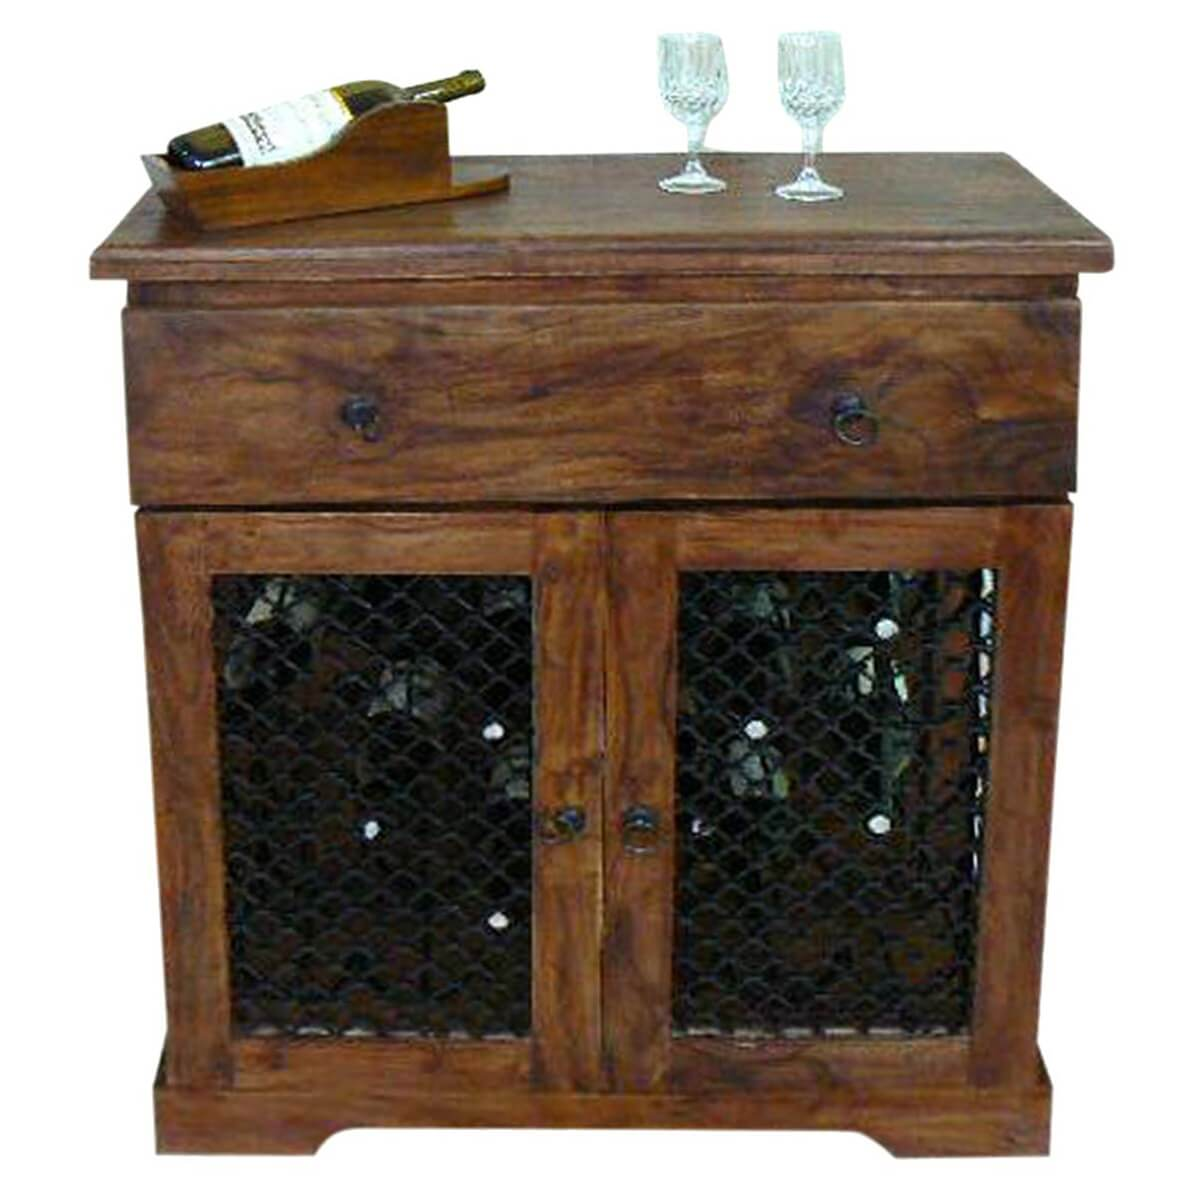 Hemlock Traditional Rustic Solid Wood Iron Grill Door Wine ...